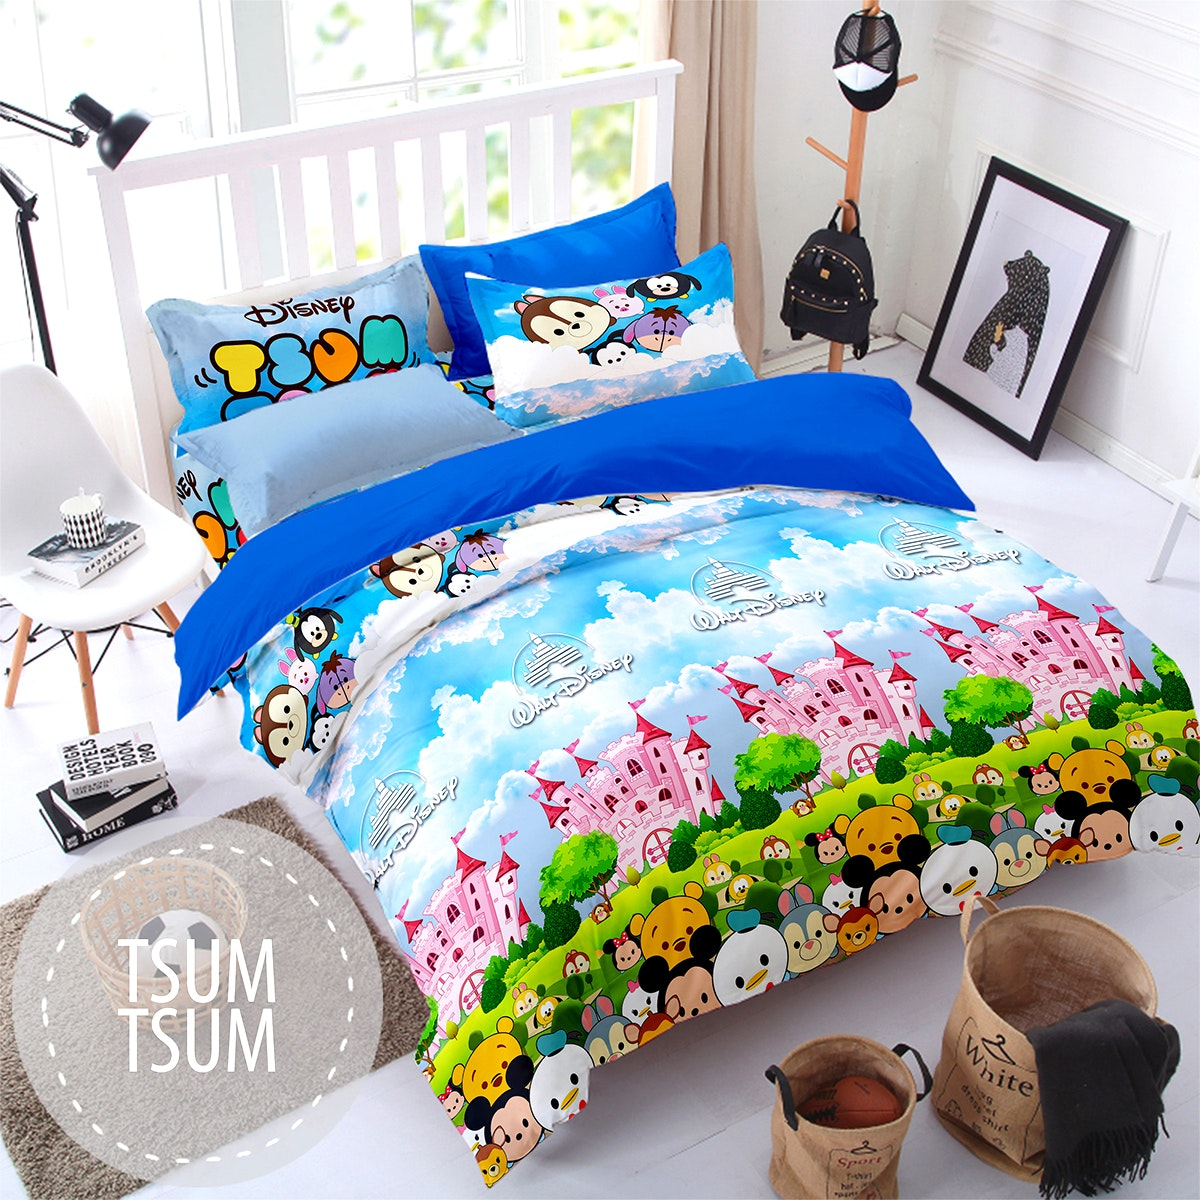 Pesona Sprei Disperse Tsum Tsum Disney uk 180 T 20